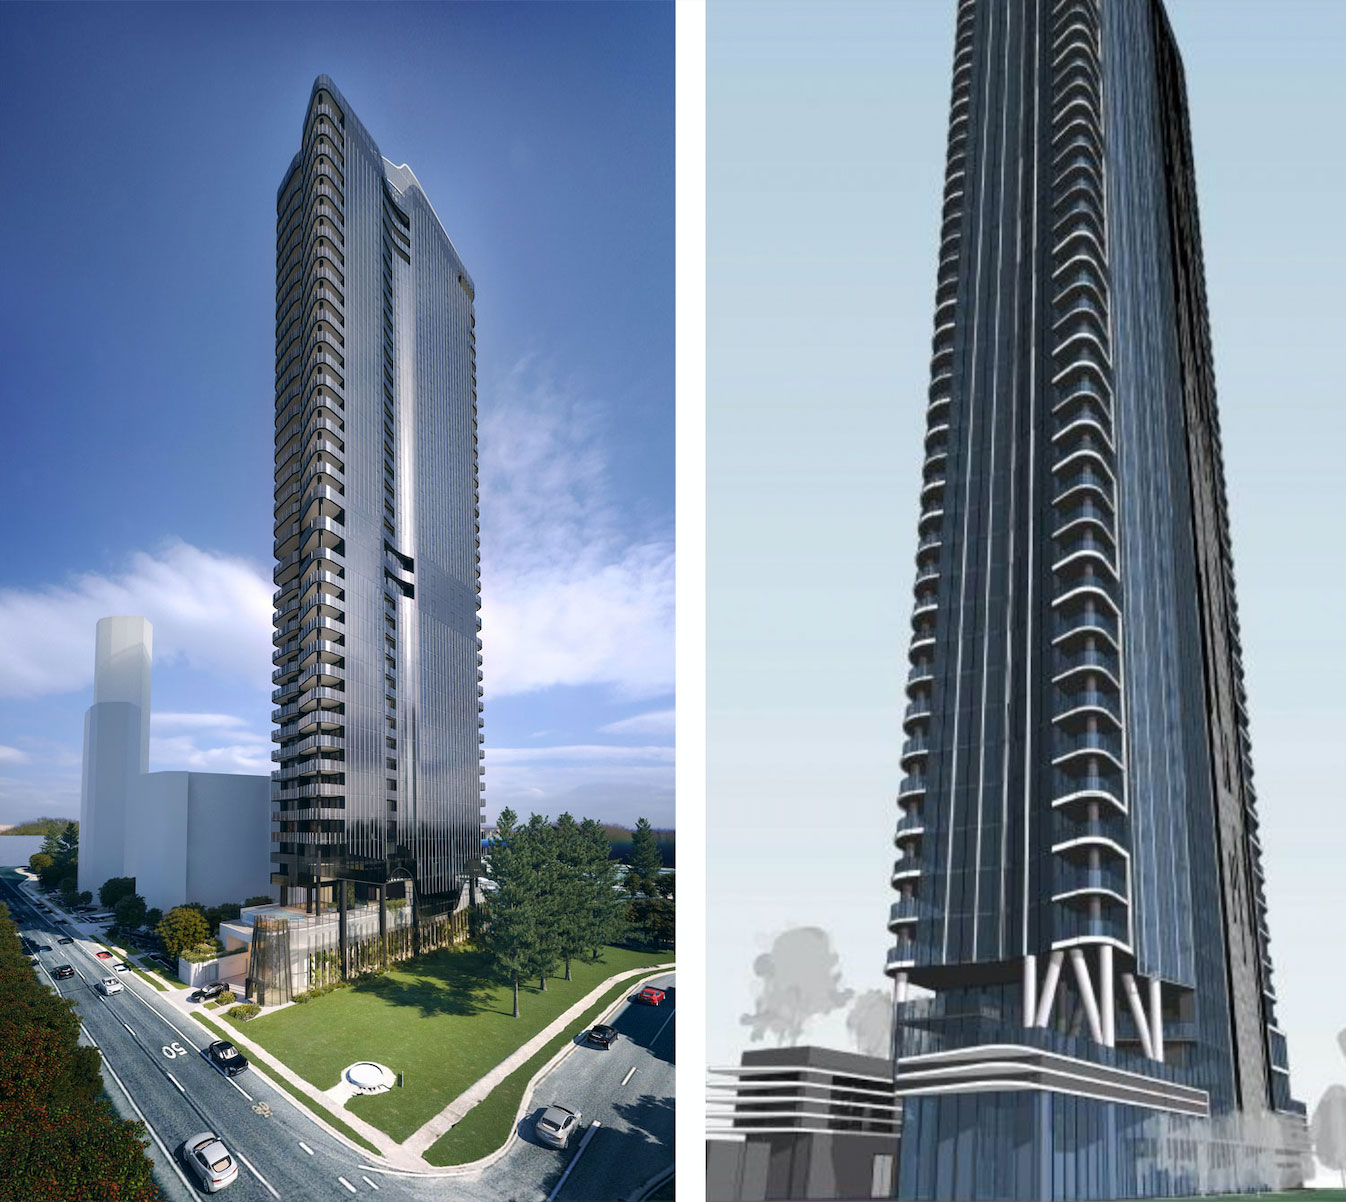 The new Cottee Parker-designed scheme (left) is 38-storeys, the old scheme is on the right.